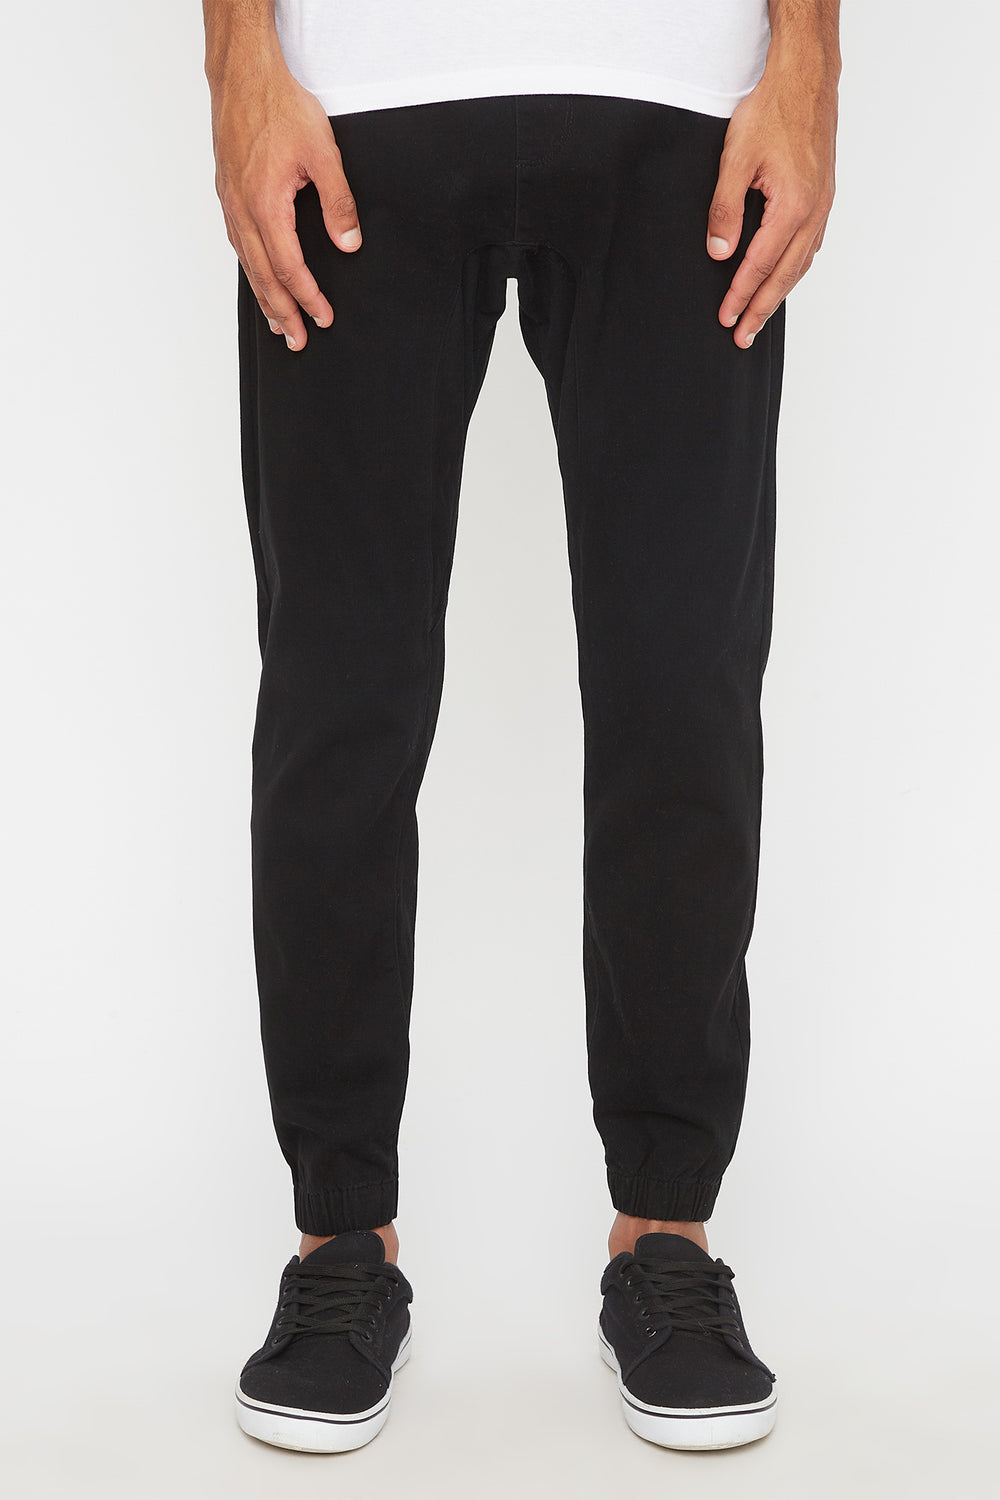 Zoo York Mens 5-Pocket Jogger Black